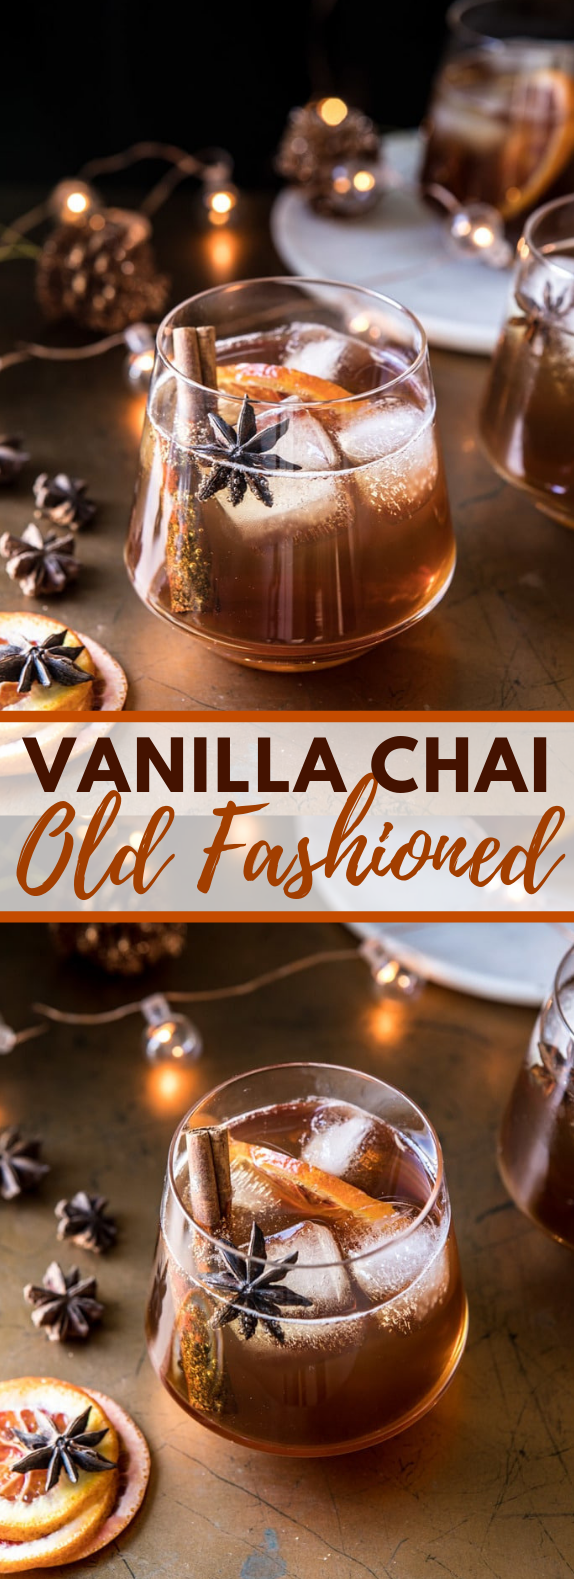 Vanilla Chai Old Fashioned #drink #cocktails